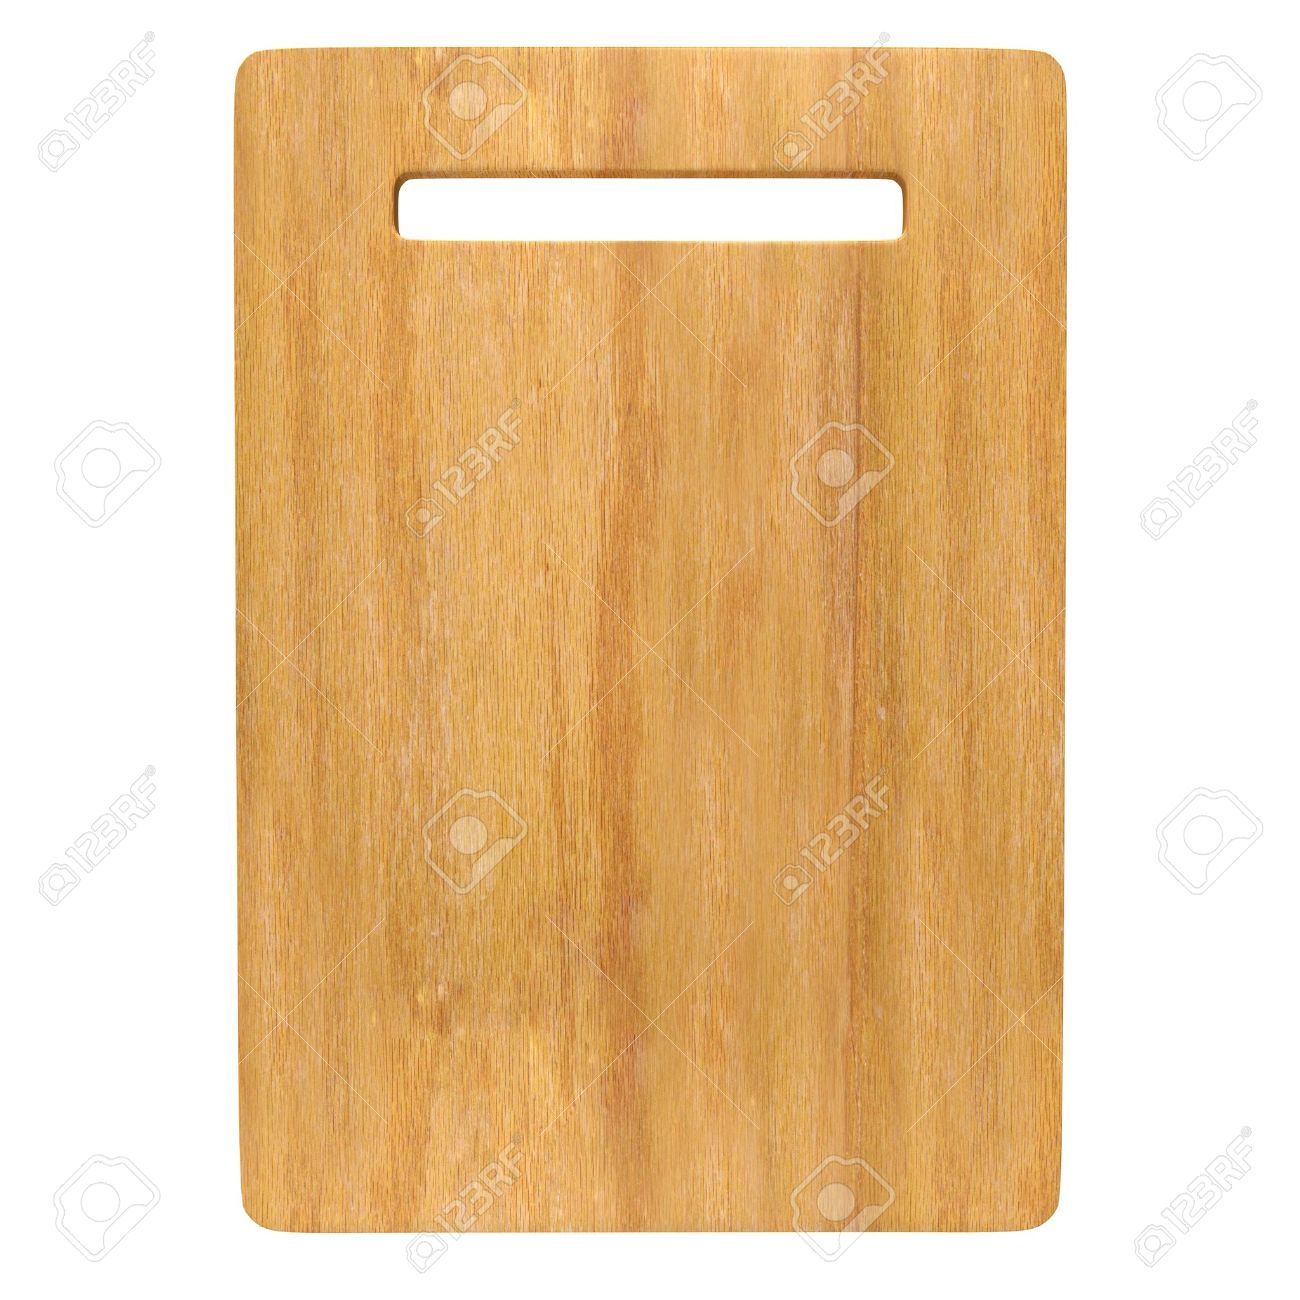 Wood Chopping board isolated on white background with Clipping path. Stock Photo - 13629153